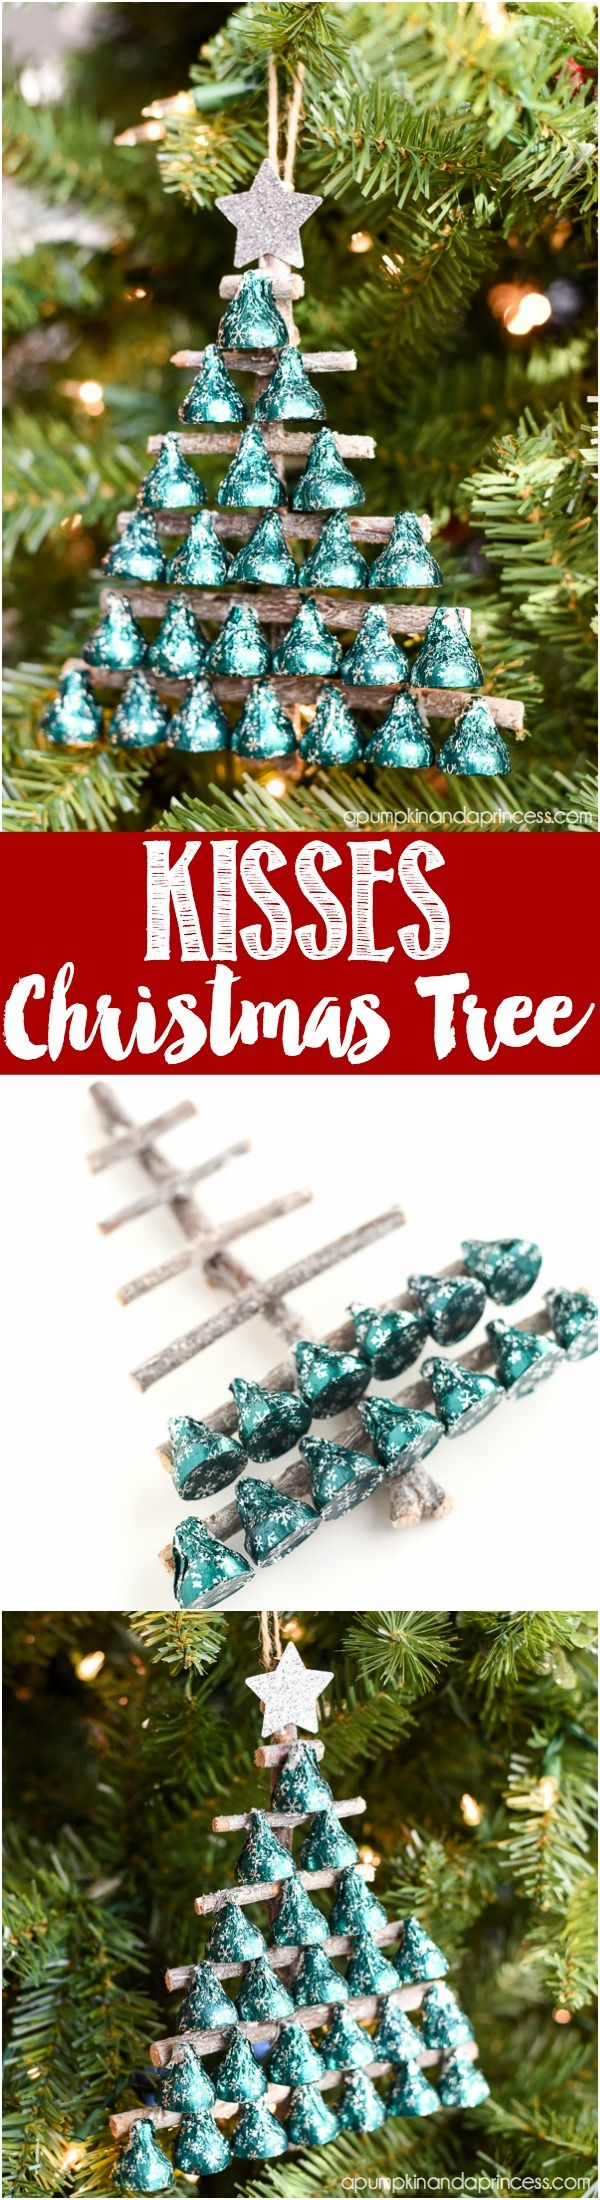 Christmas trees decorated with candy - Diy Kisses Candy Christmas Tree Cute Neighbor Gift Or Teacher Gift Idea Kids Can Make